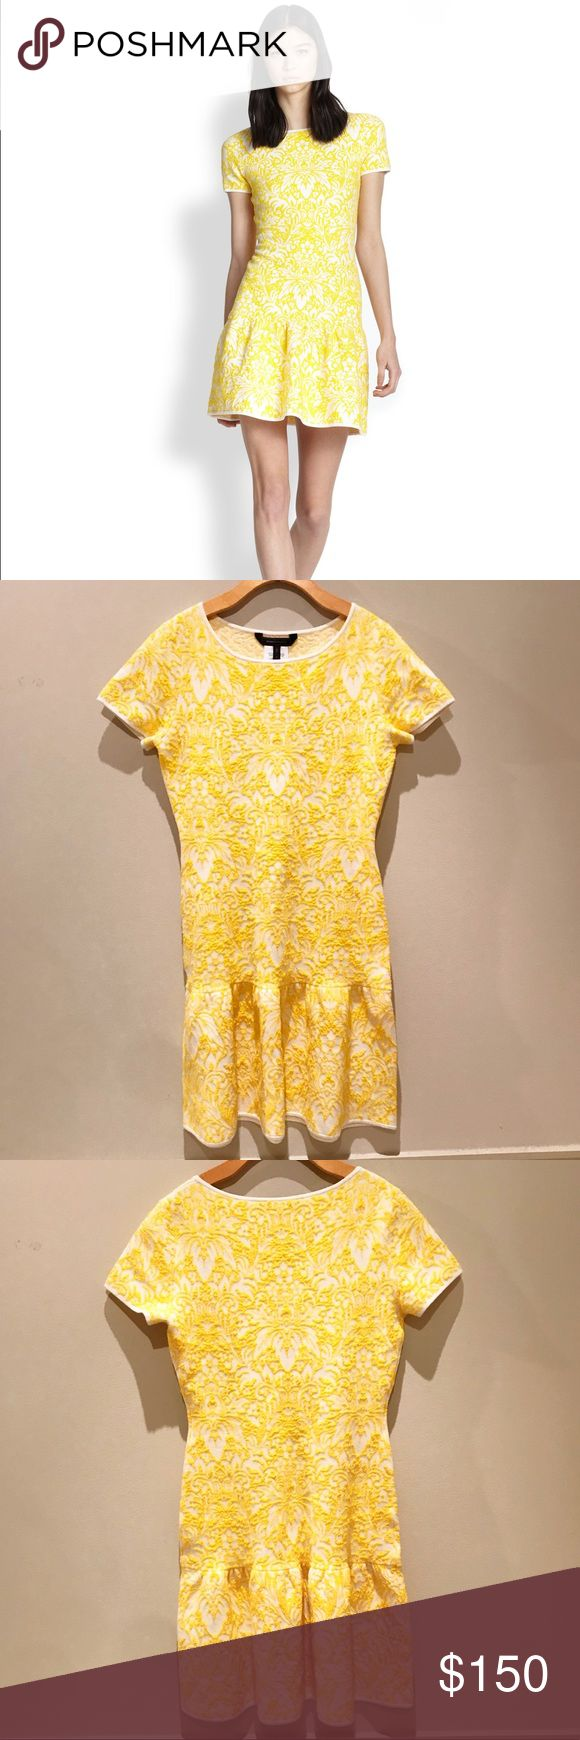 Bambi Puckered Jacquard A-Line Dress Yellow Like new, beautiful, drop waist BCBGMaxAzria dress. Round neck. Short sleeves. Allover puckered jacquard floral pattern. Drop-waist skirt with shirring at seam. Cotton, Nylon, Spandex. BCBGMaxAzria Dresses